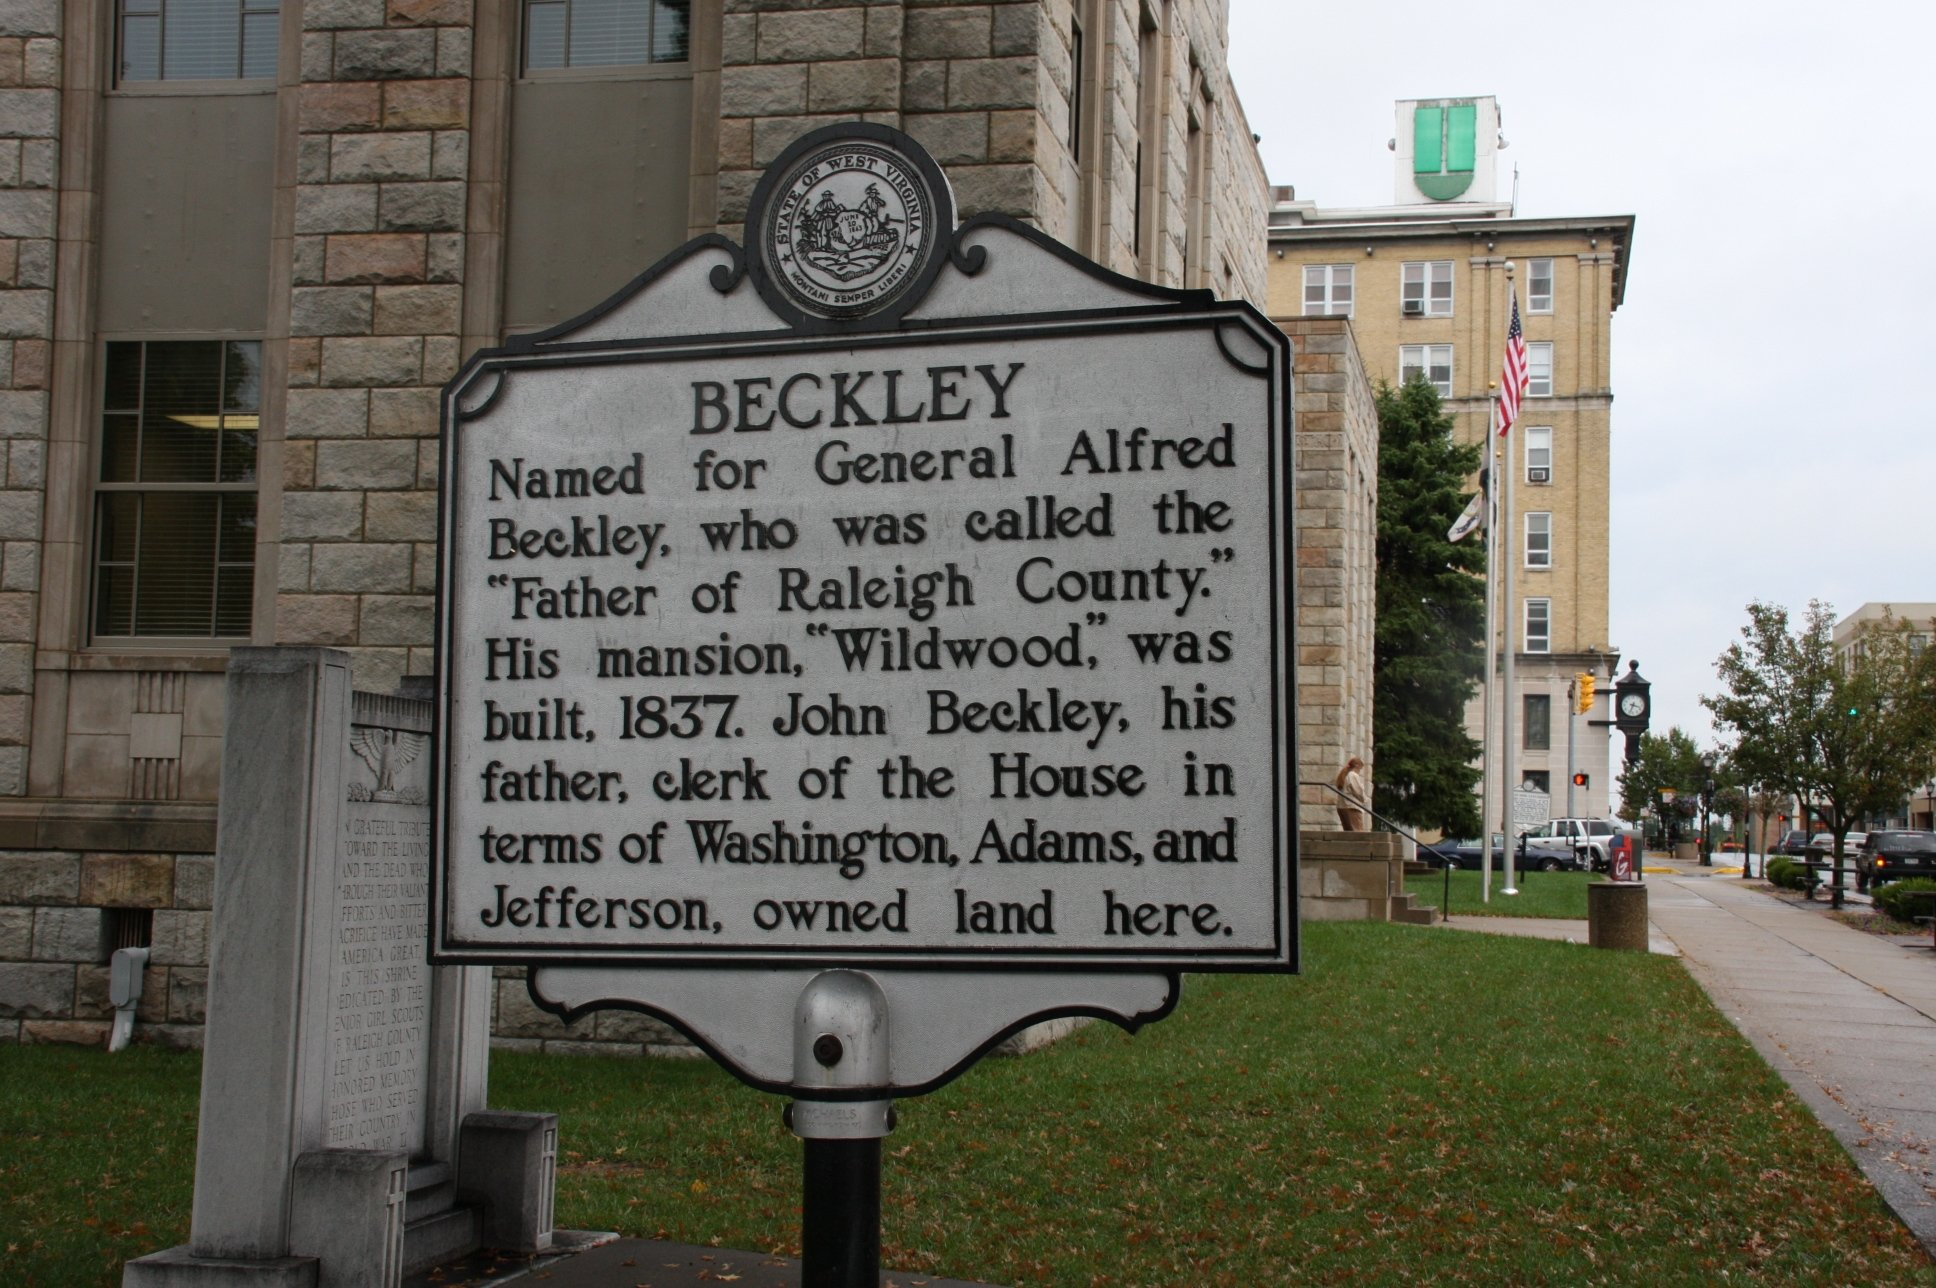 One historical marker commemorates the origins of the town of Beckley. Image obtained from the Historical Marker Database.